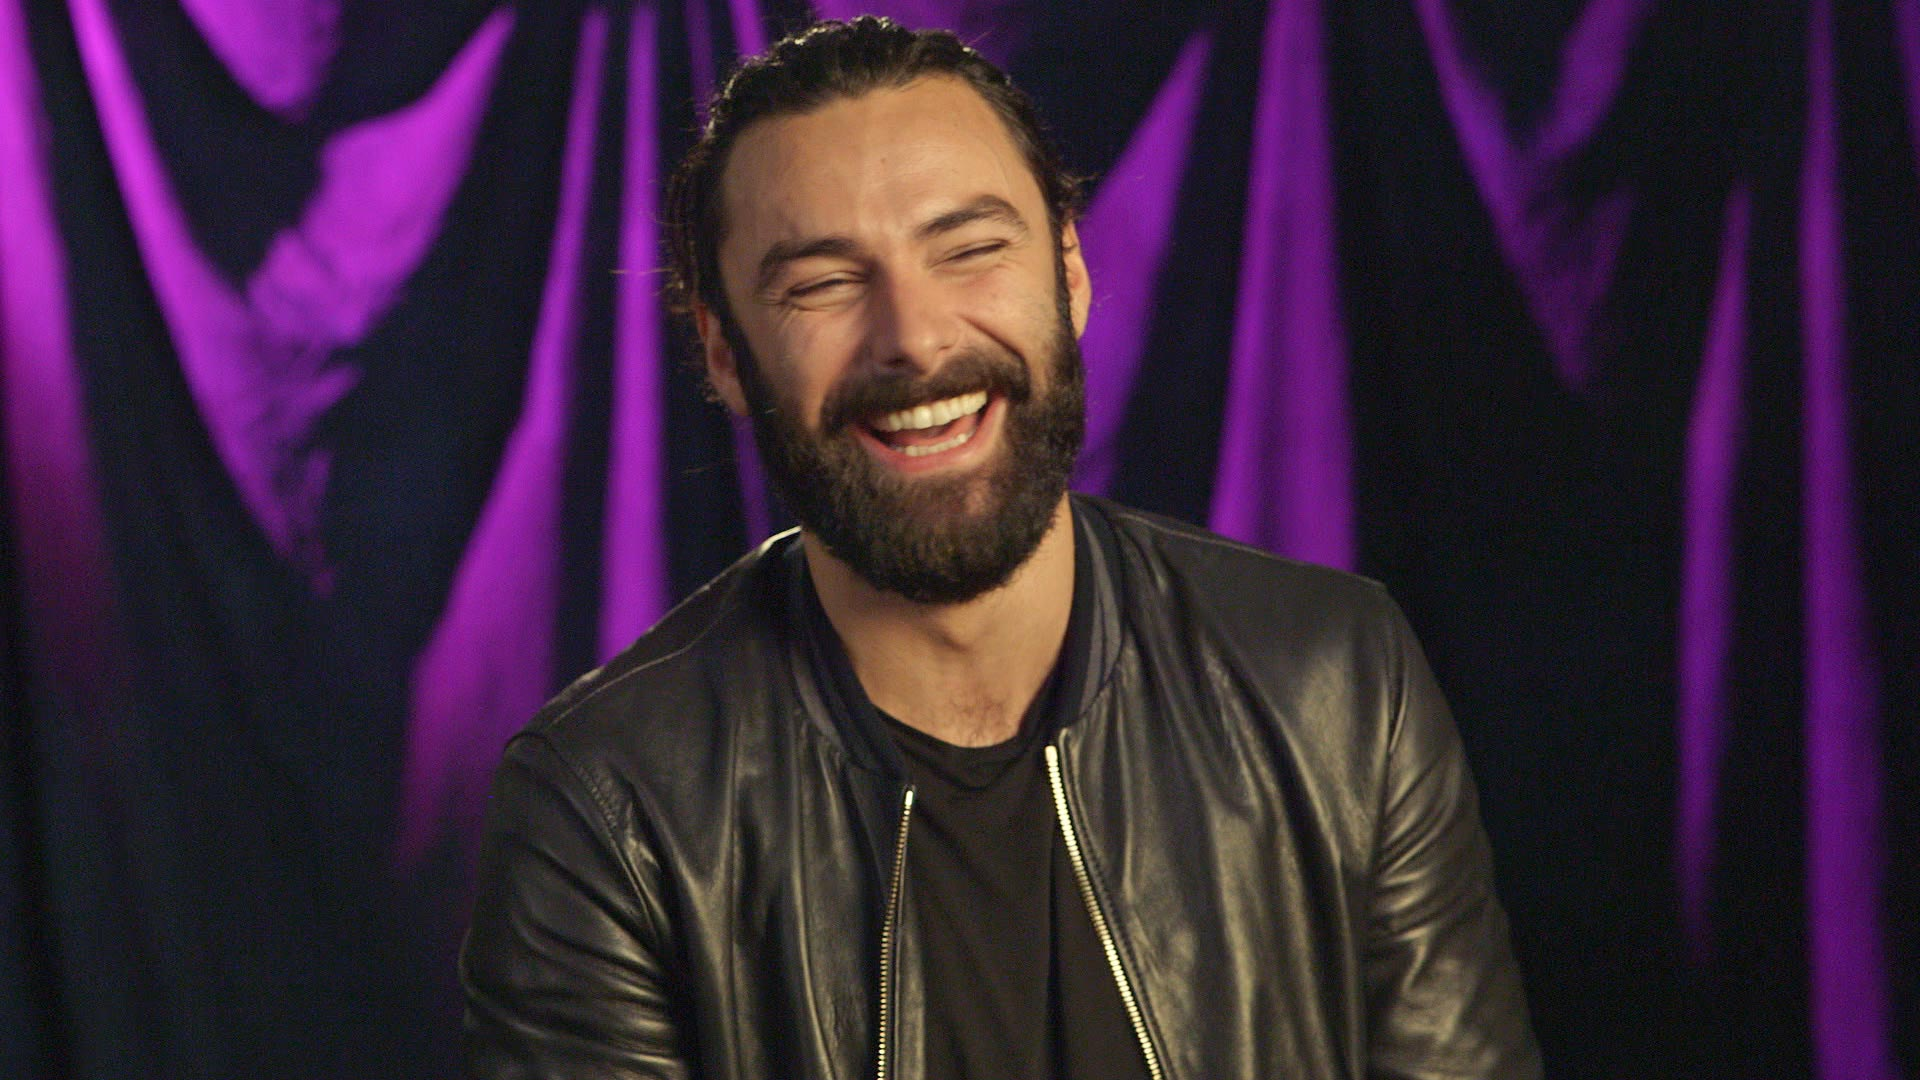 Aidan Turner talks about his character Ross Poldark